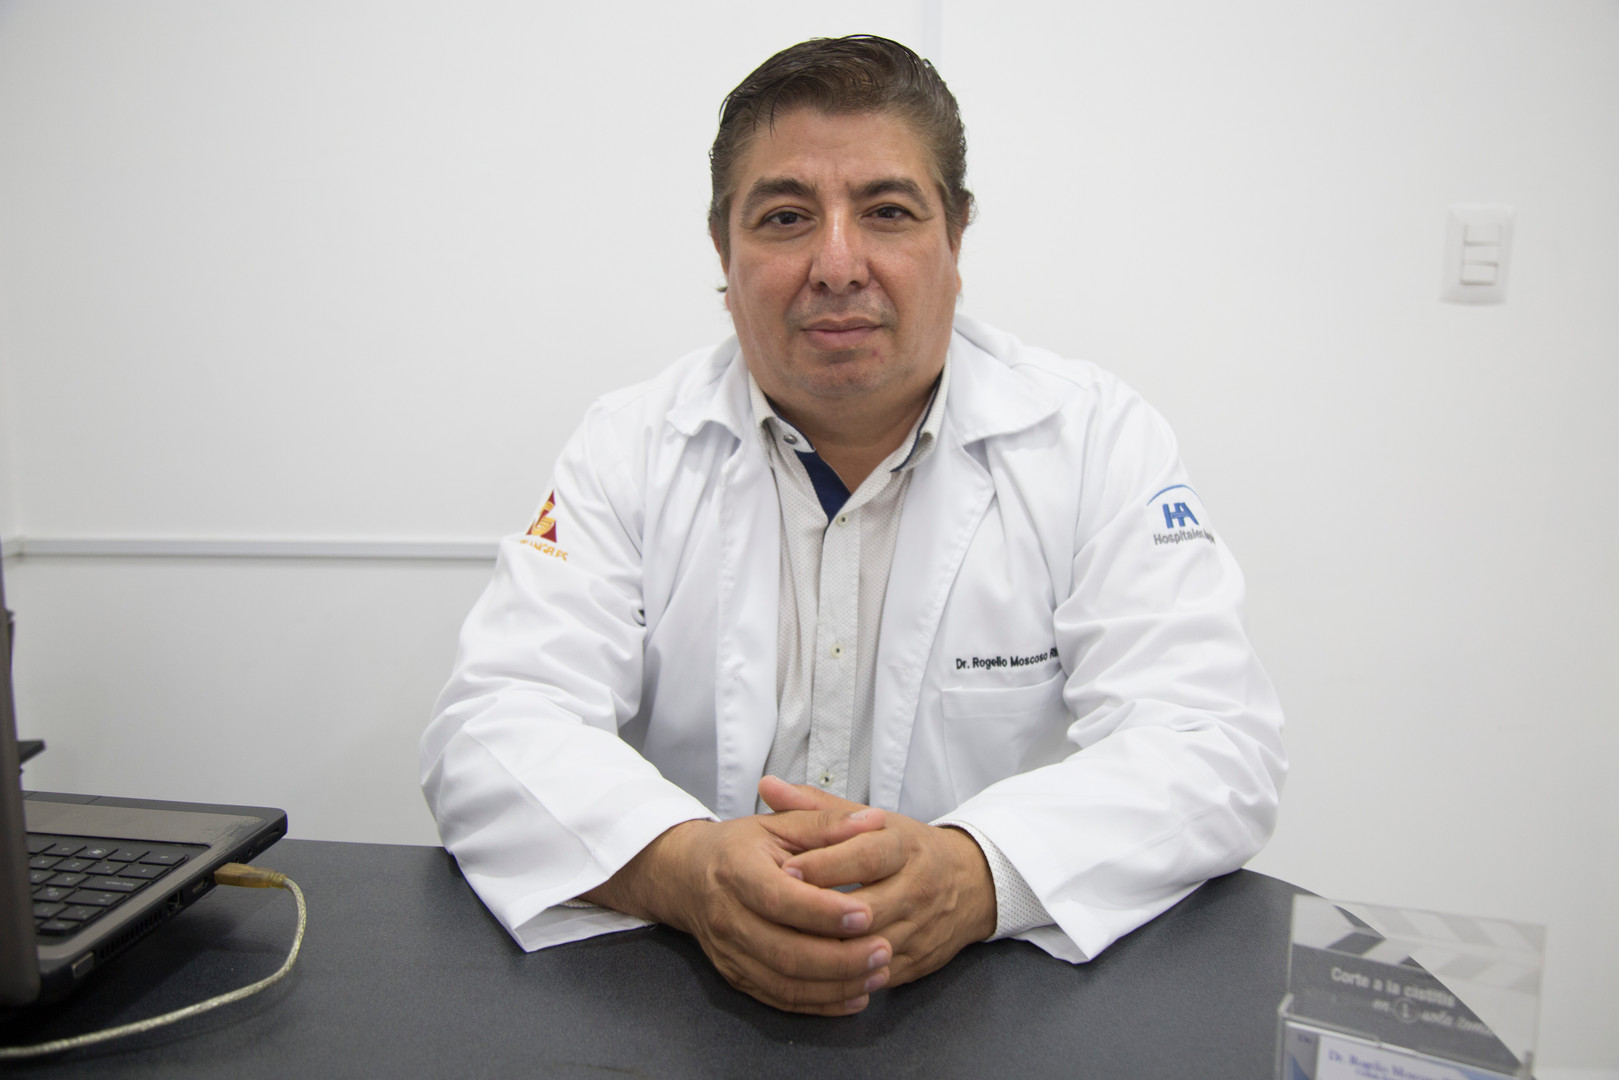 Dr Rogelio Moscoso.JPG